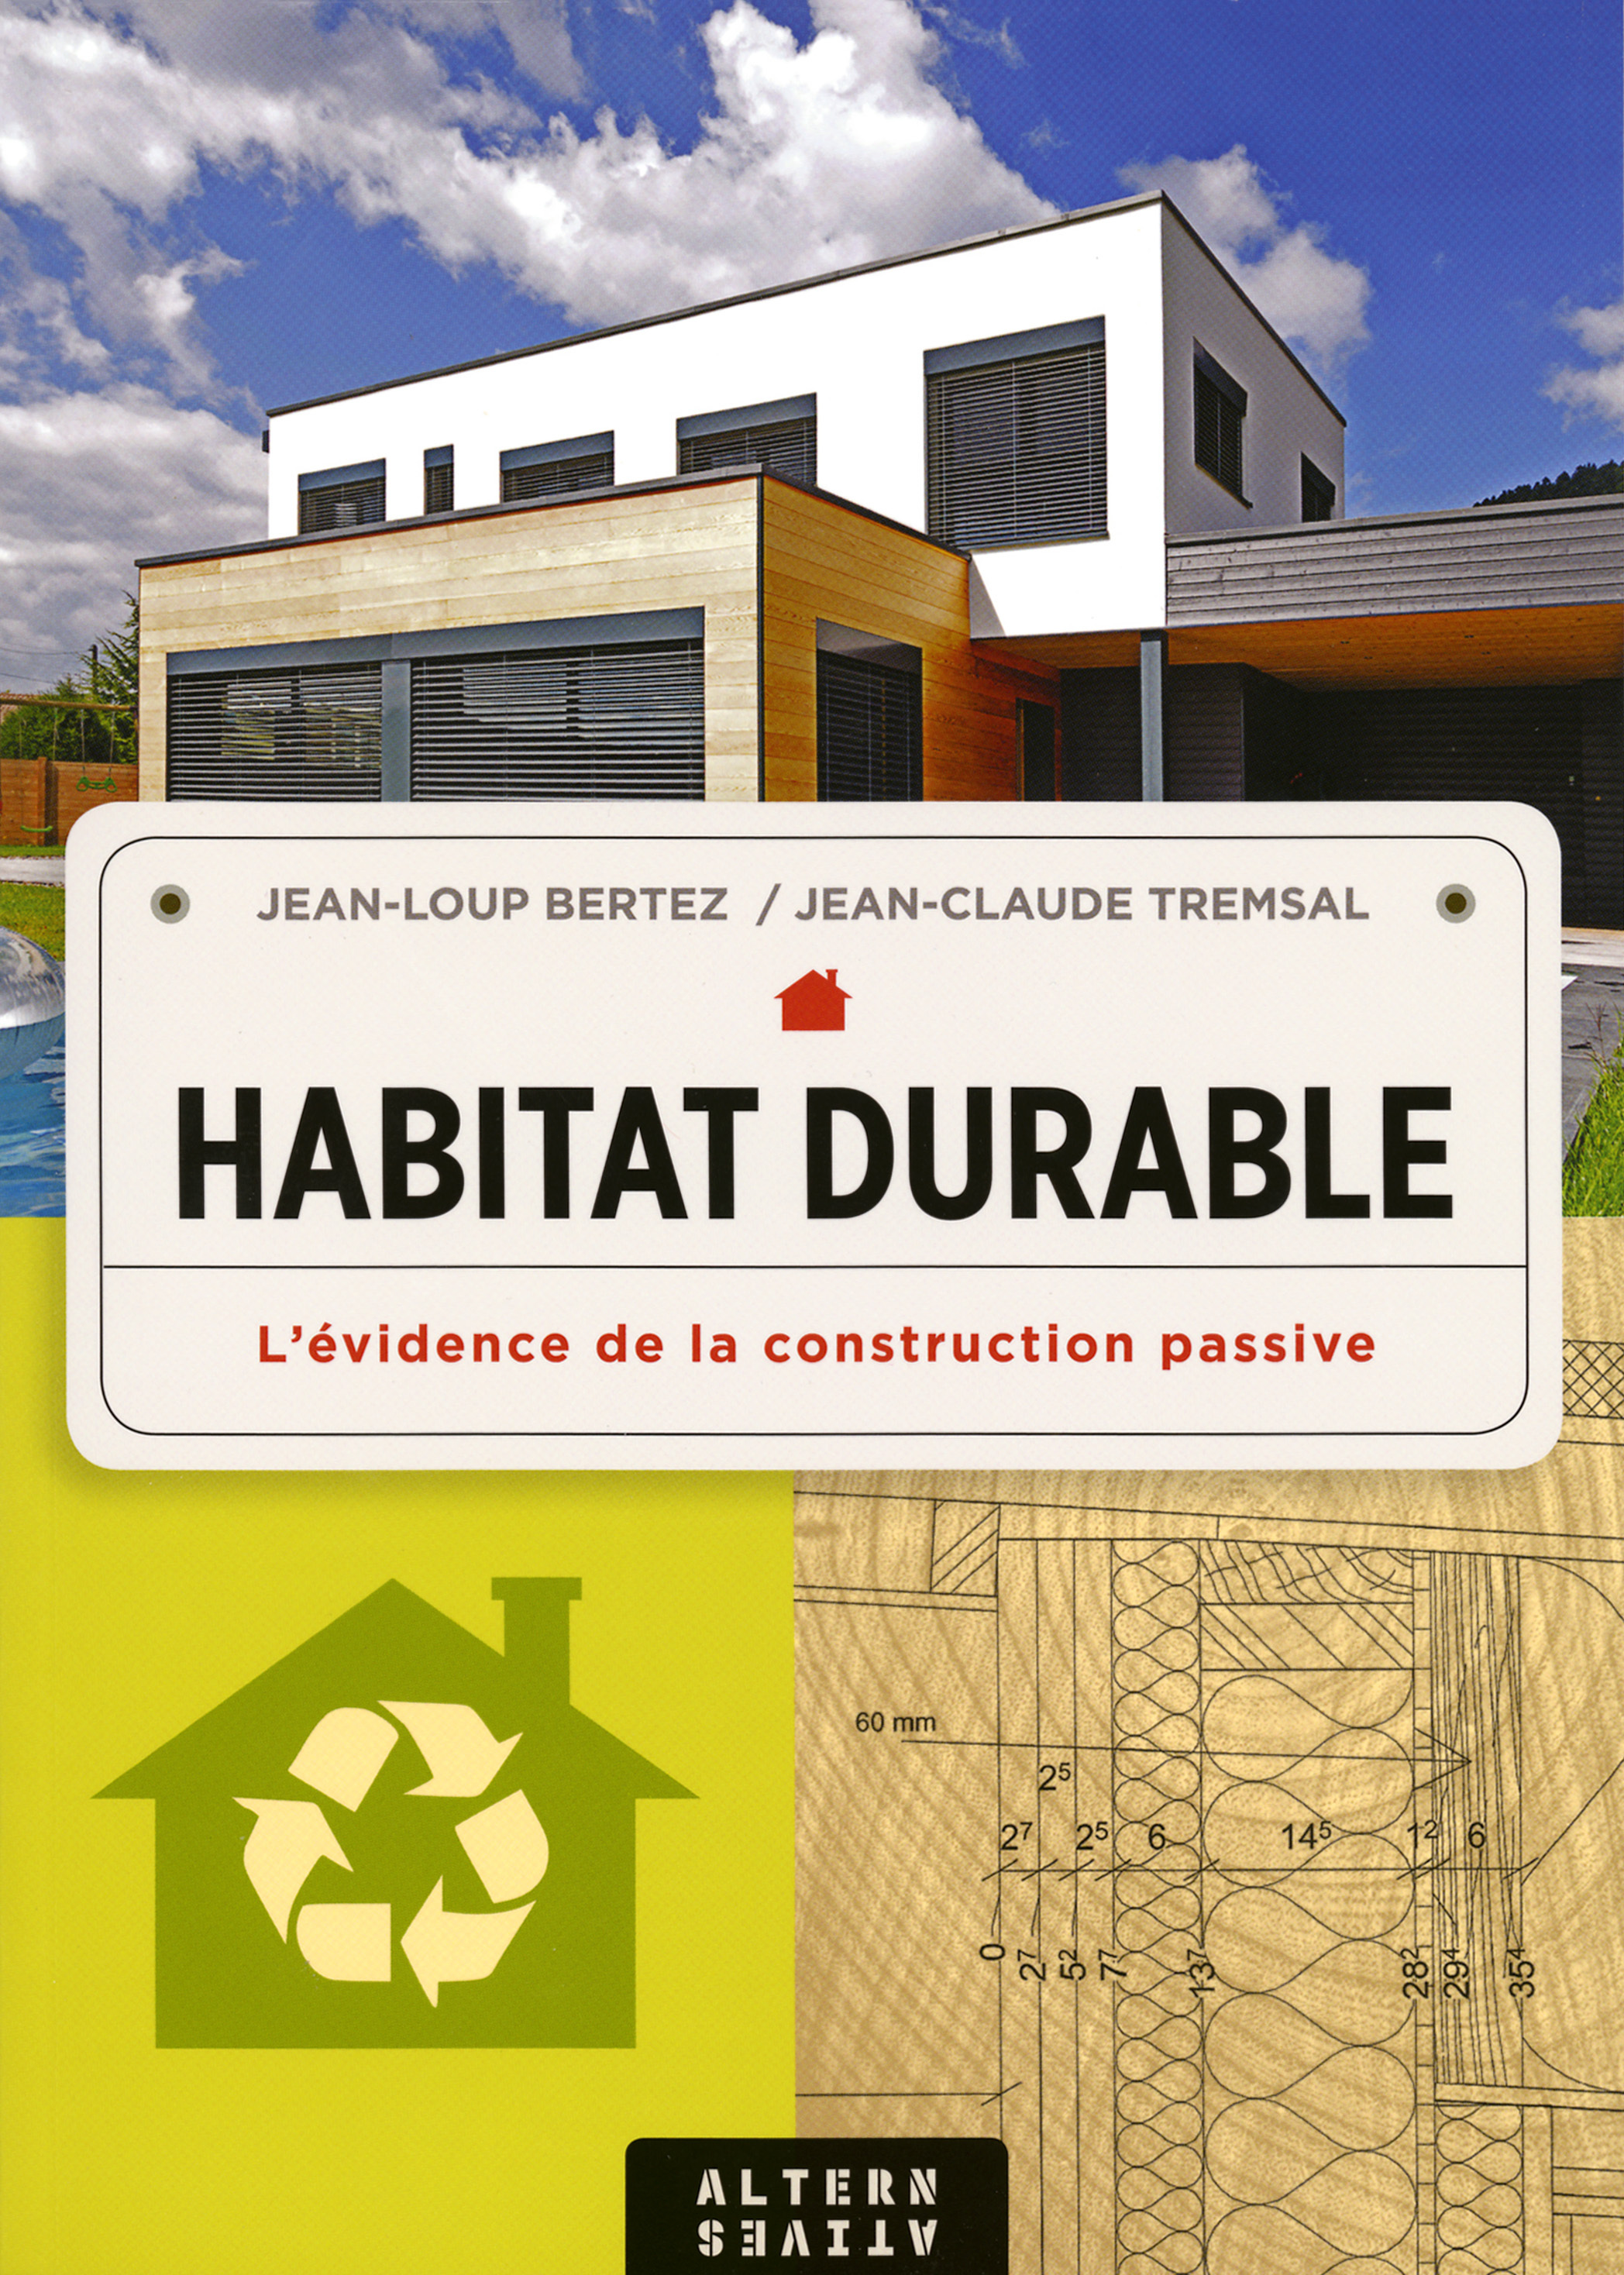 HABITAT DURABLE